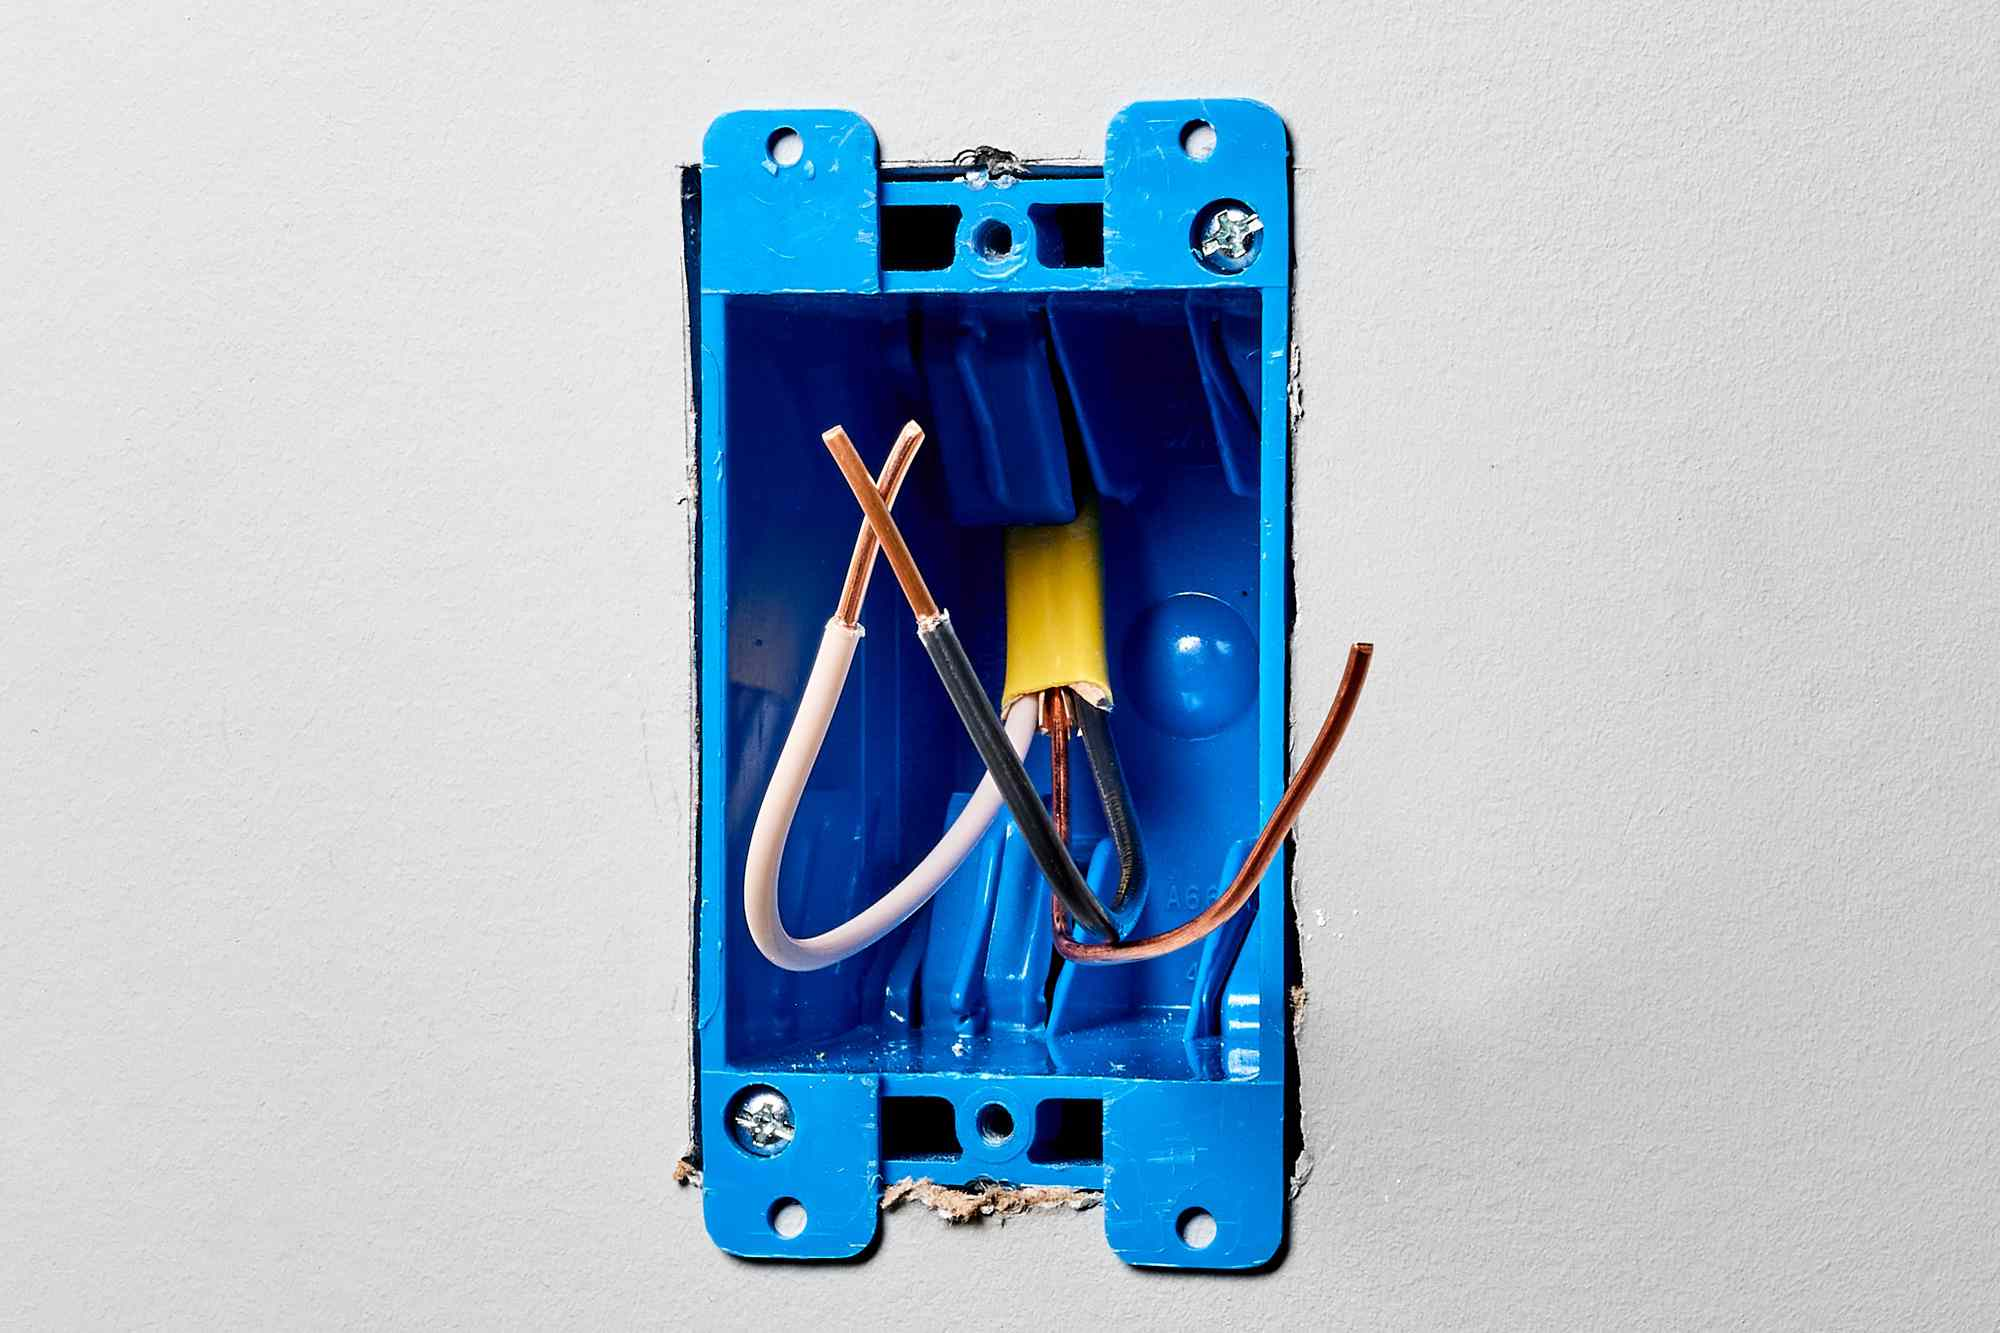 Exposed blue electrical switch box with short circuit wires